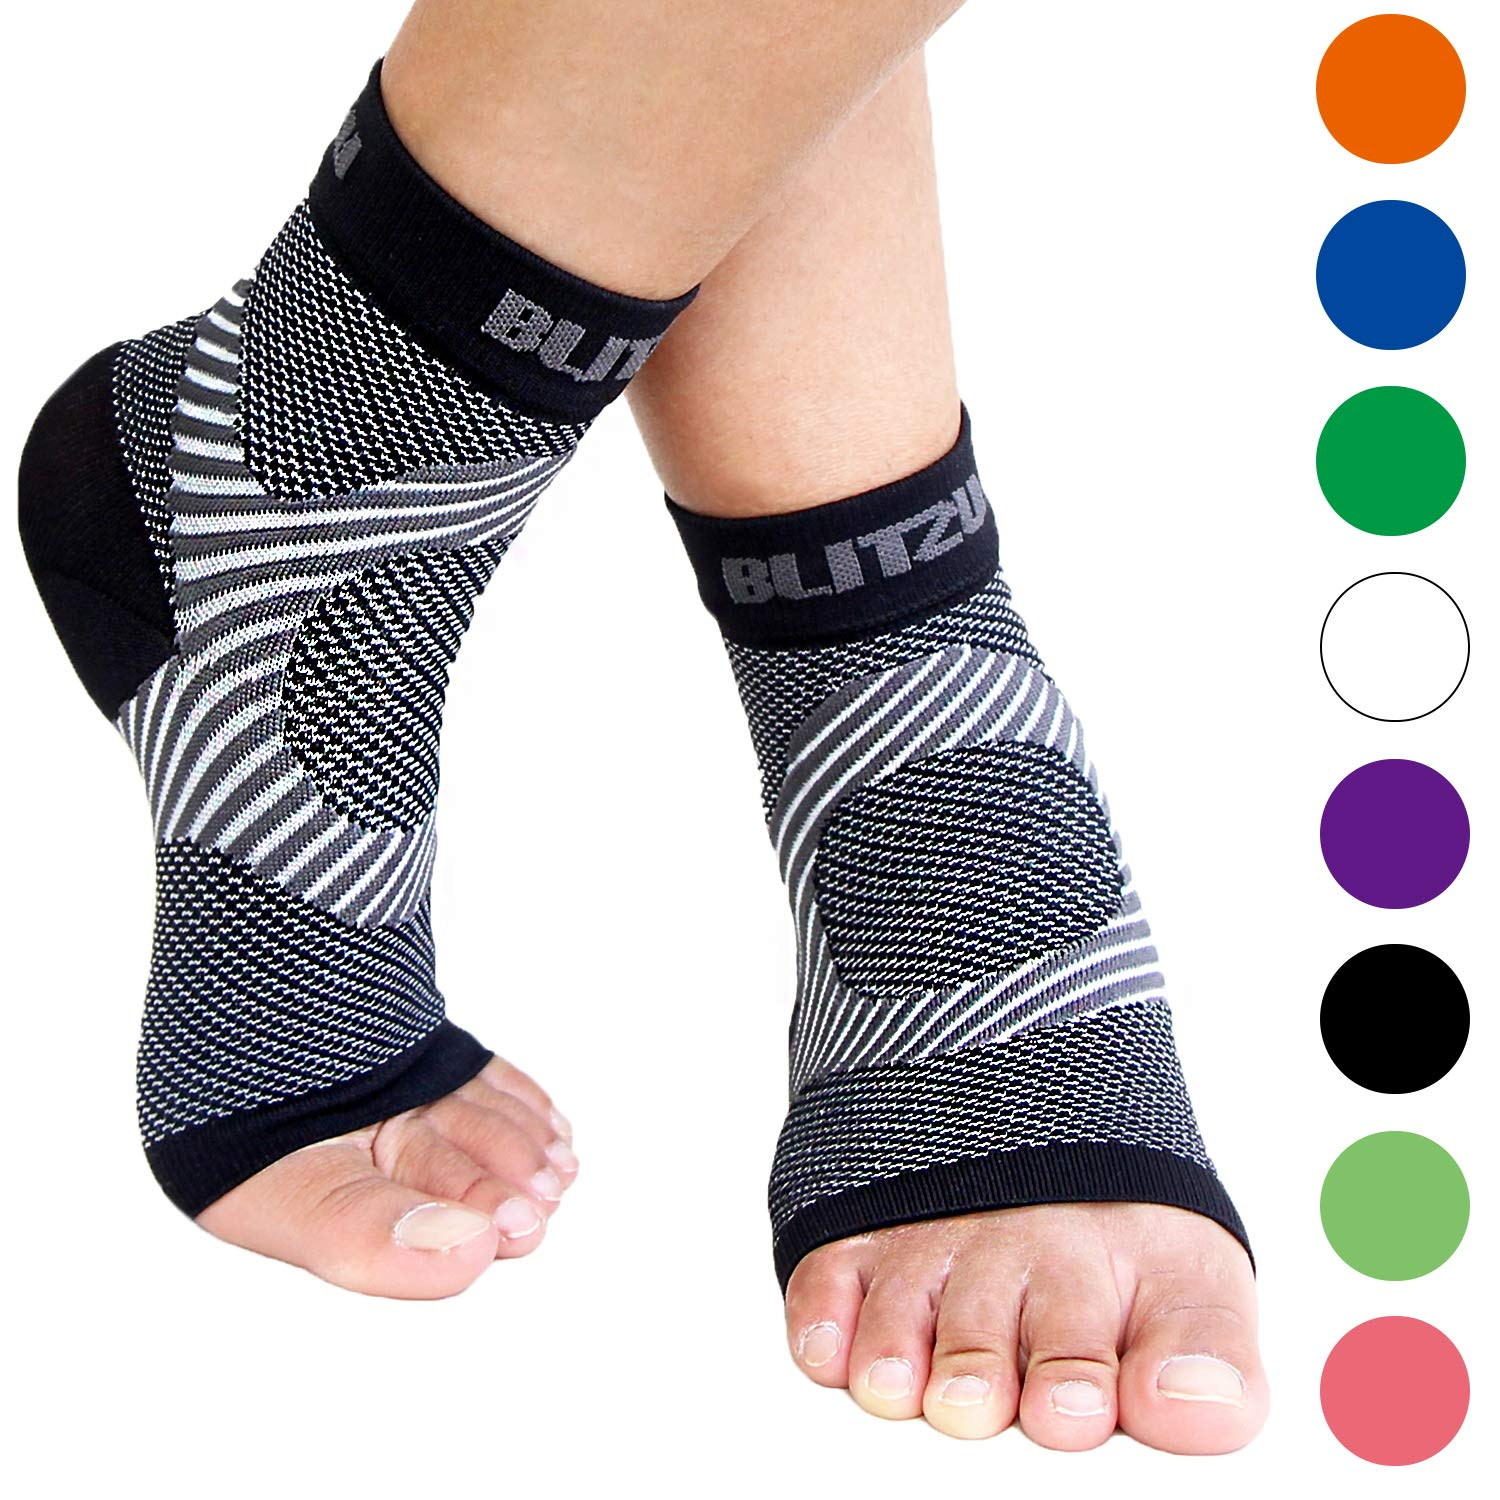 Plantar Fasciitis Socks with Arch Support, BEST Foot Care Compression Sleeve, Better than Night Splint, Eases Swelling & Heel Spurs, Ankle Brace Support, Increases Circulation, Relieve Pain BLACK L-XL